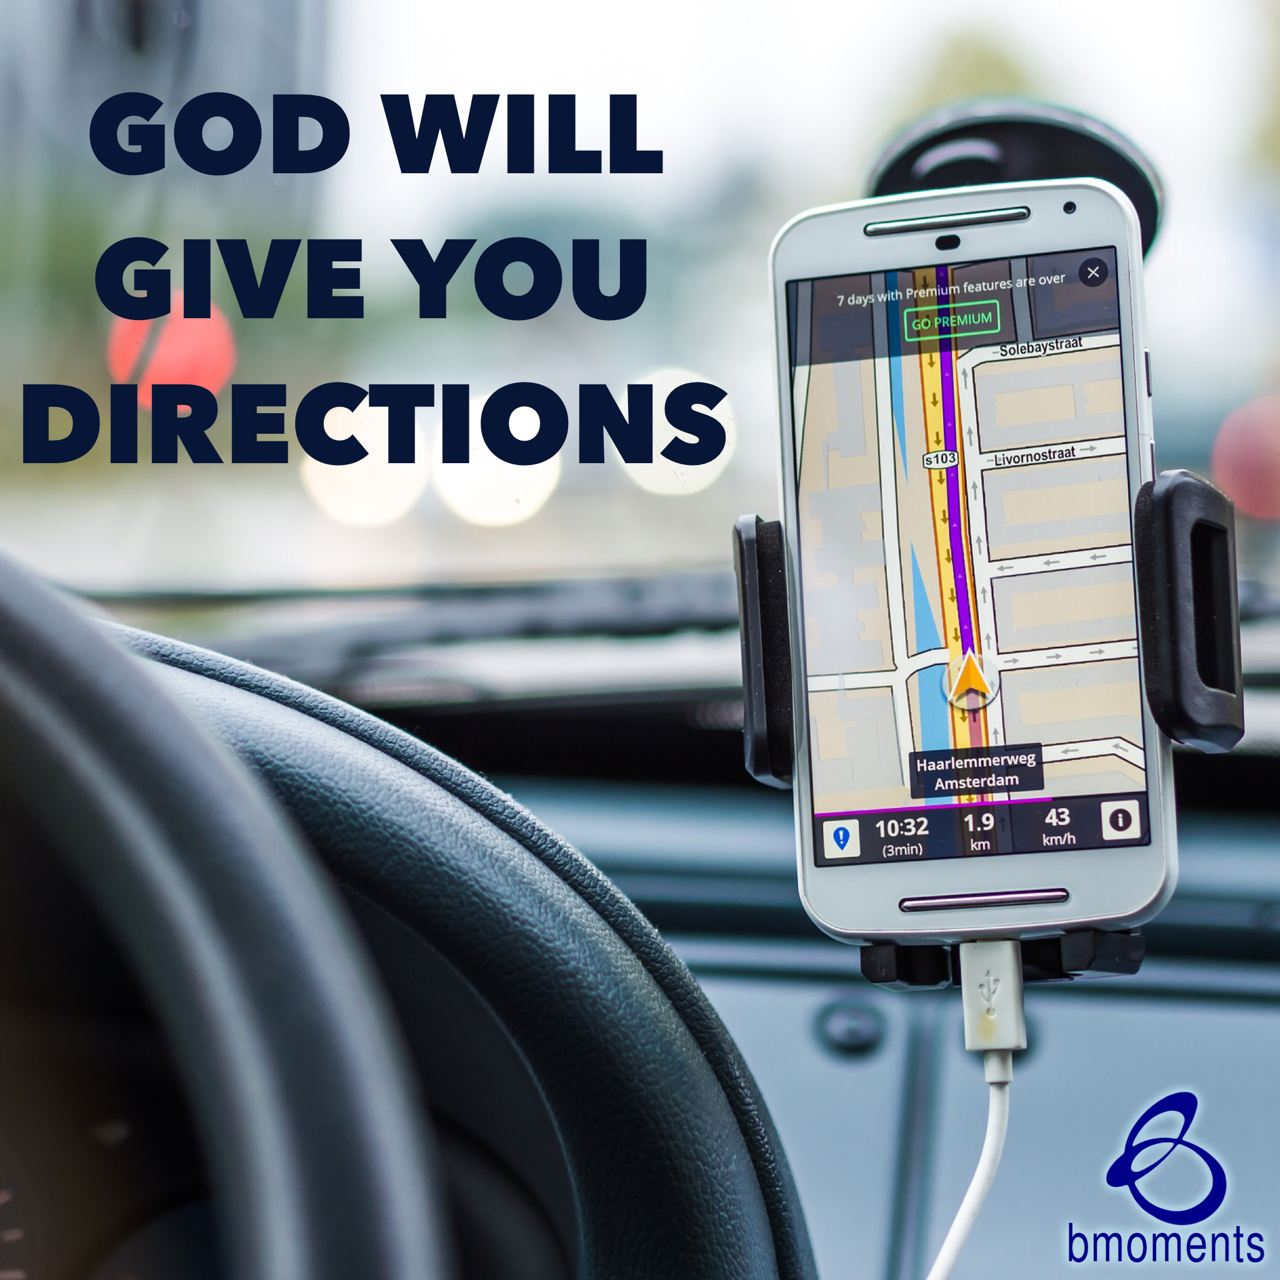 Turn on Your GPS for God